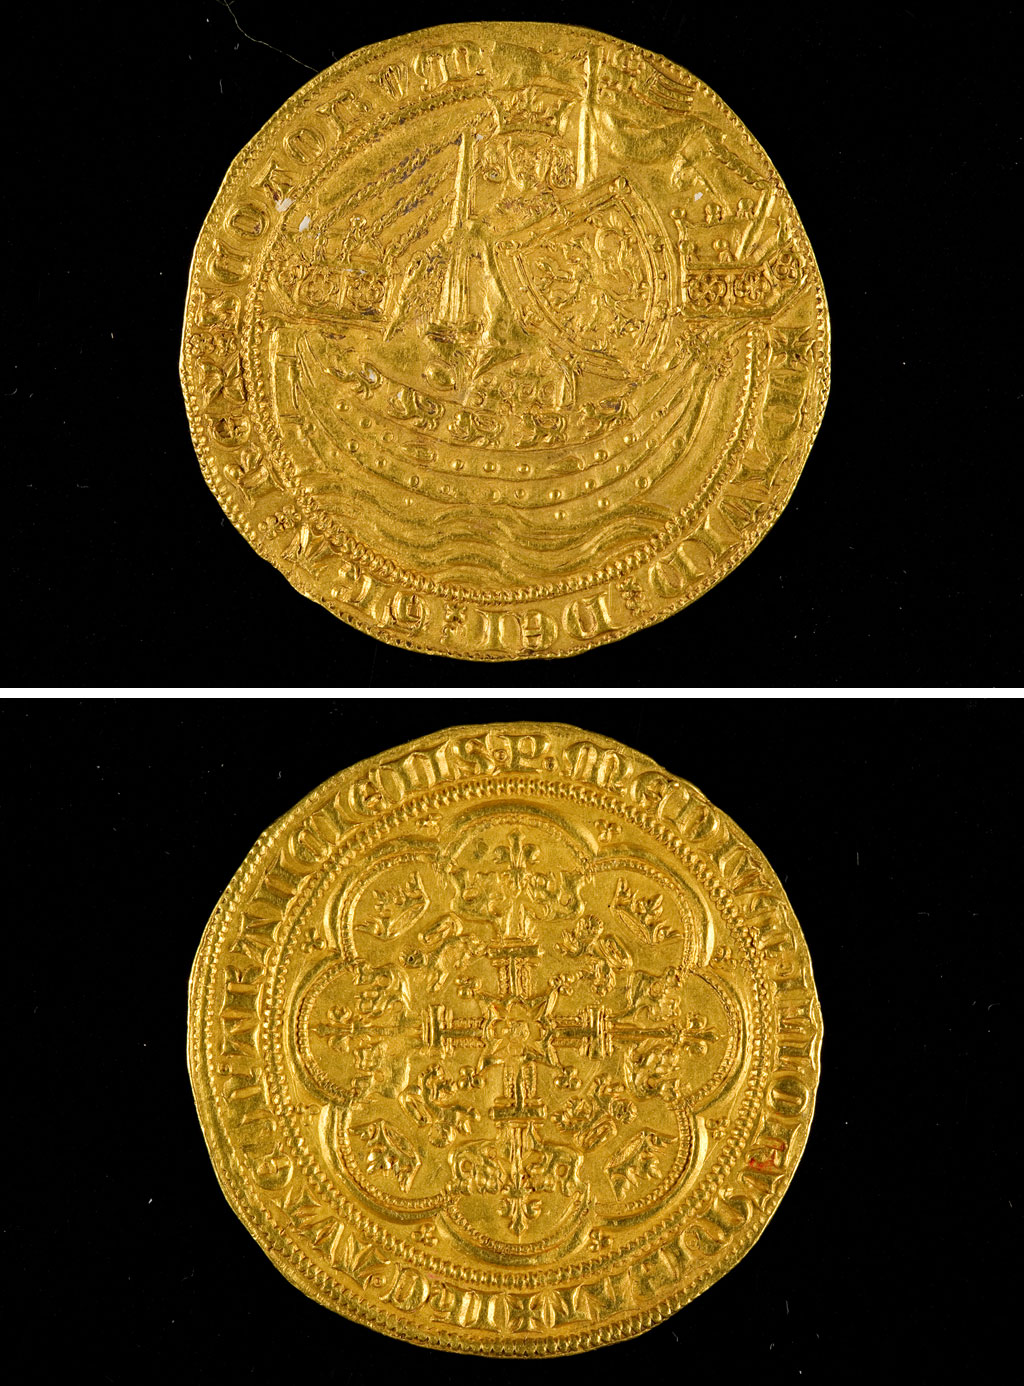 a composite photo showing the front and back of an old coin